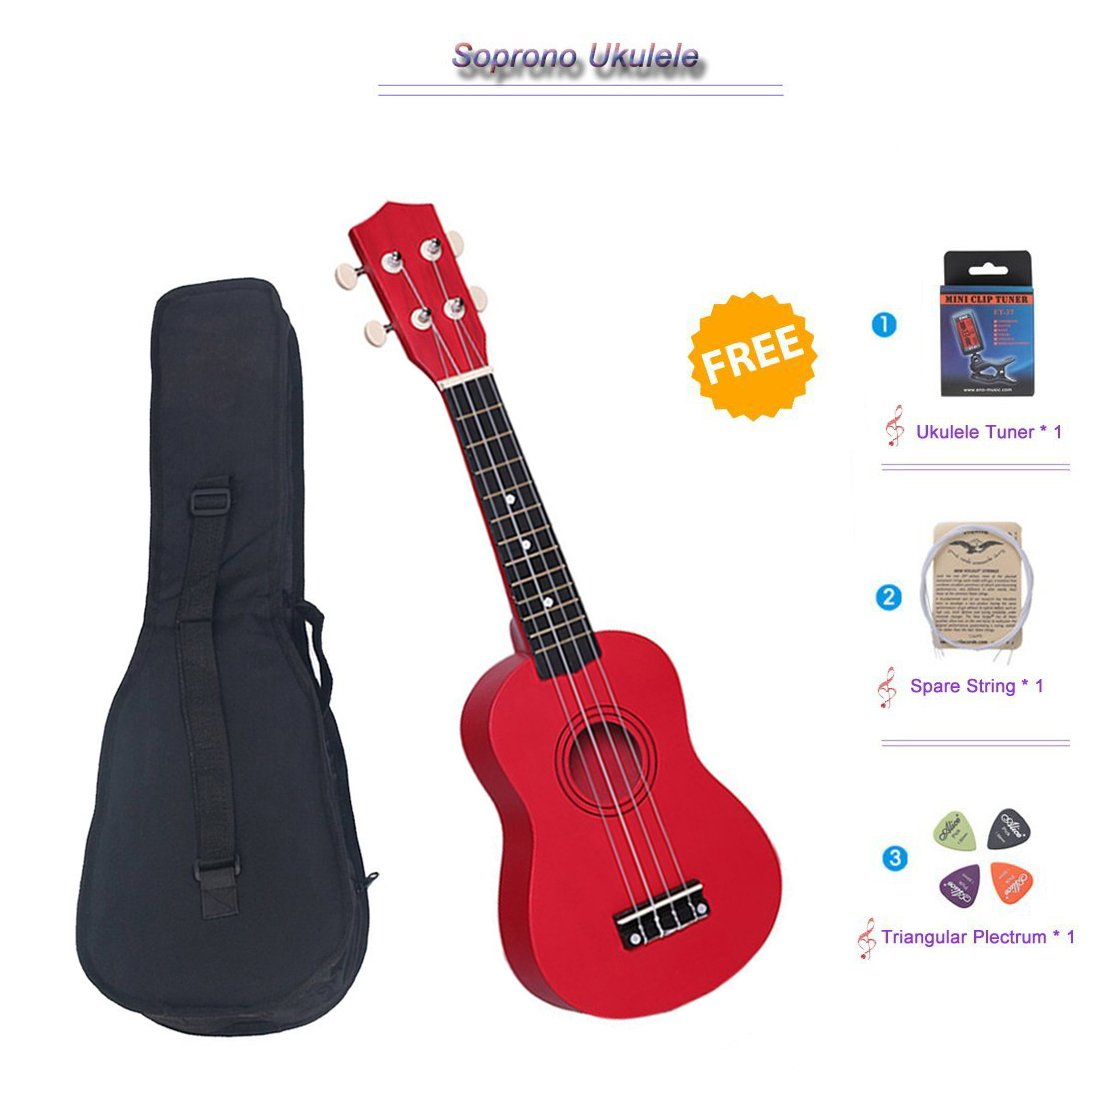 NOT HOME® 21 Soprano Ukulele with a Carrying Bag and a Digital Tuner, Specially Designed for Kids, Students and Beginners XLY XLY-15982